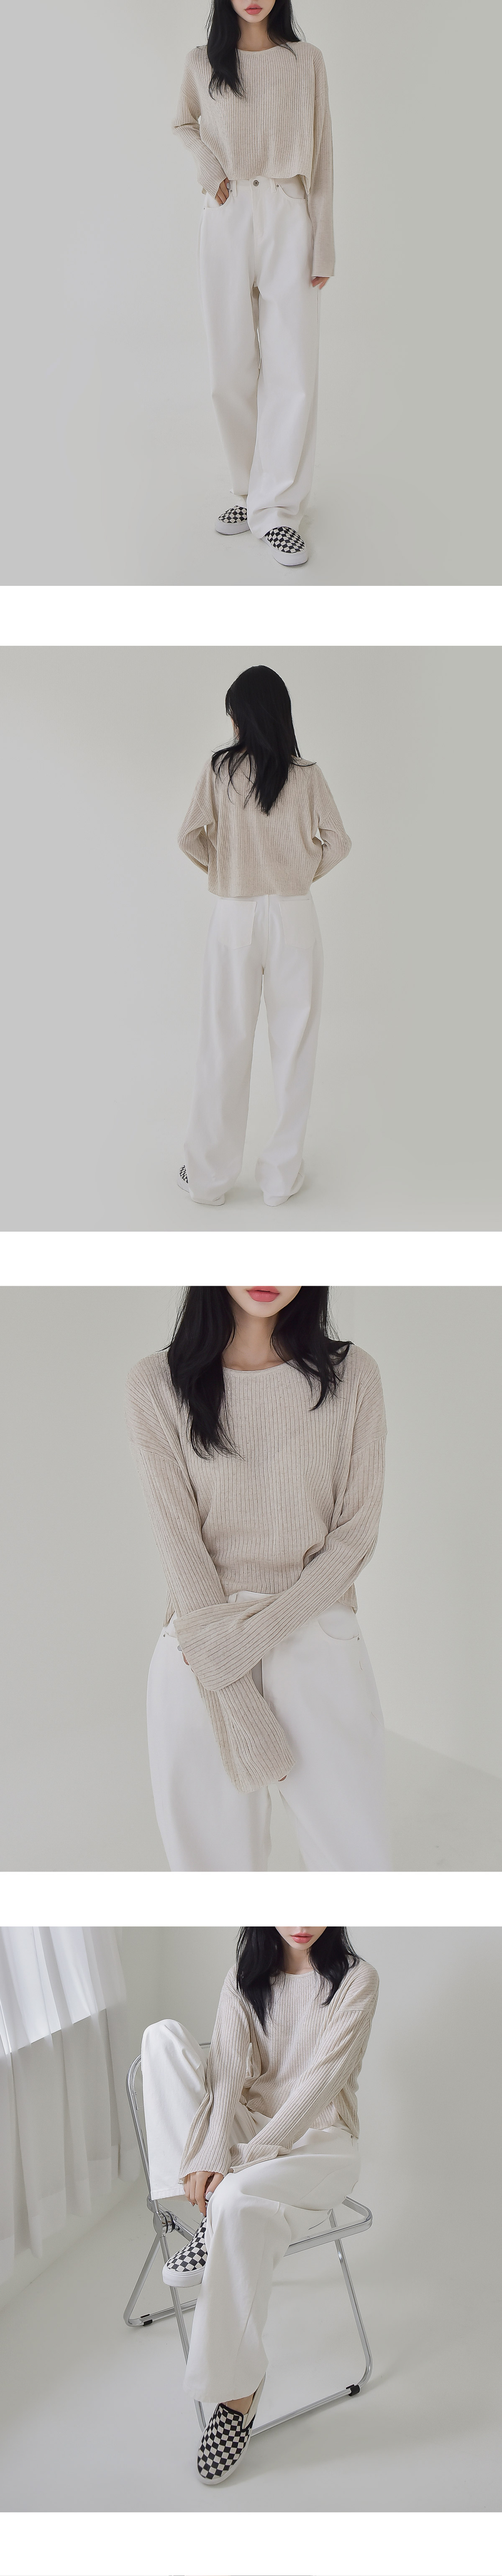 Awesome linen knit